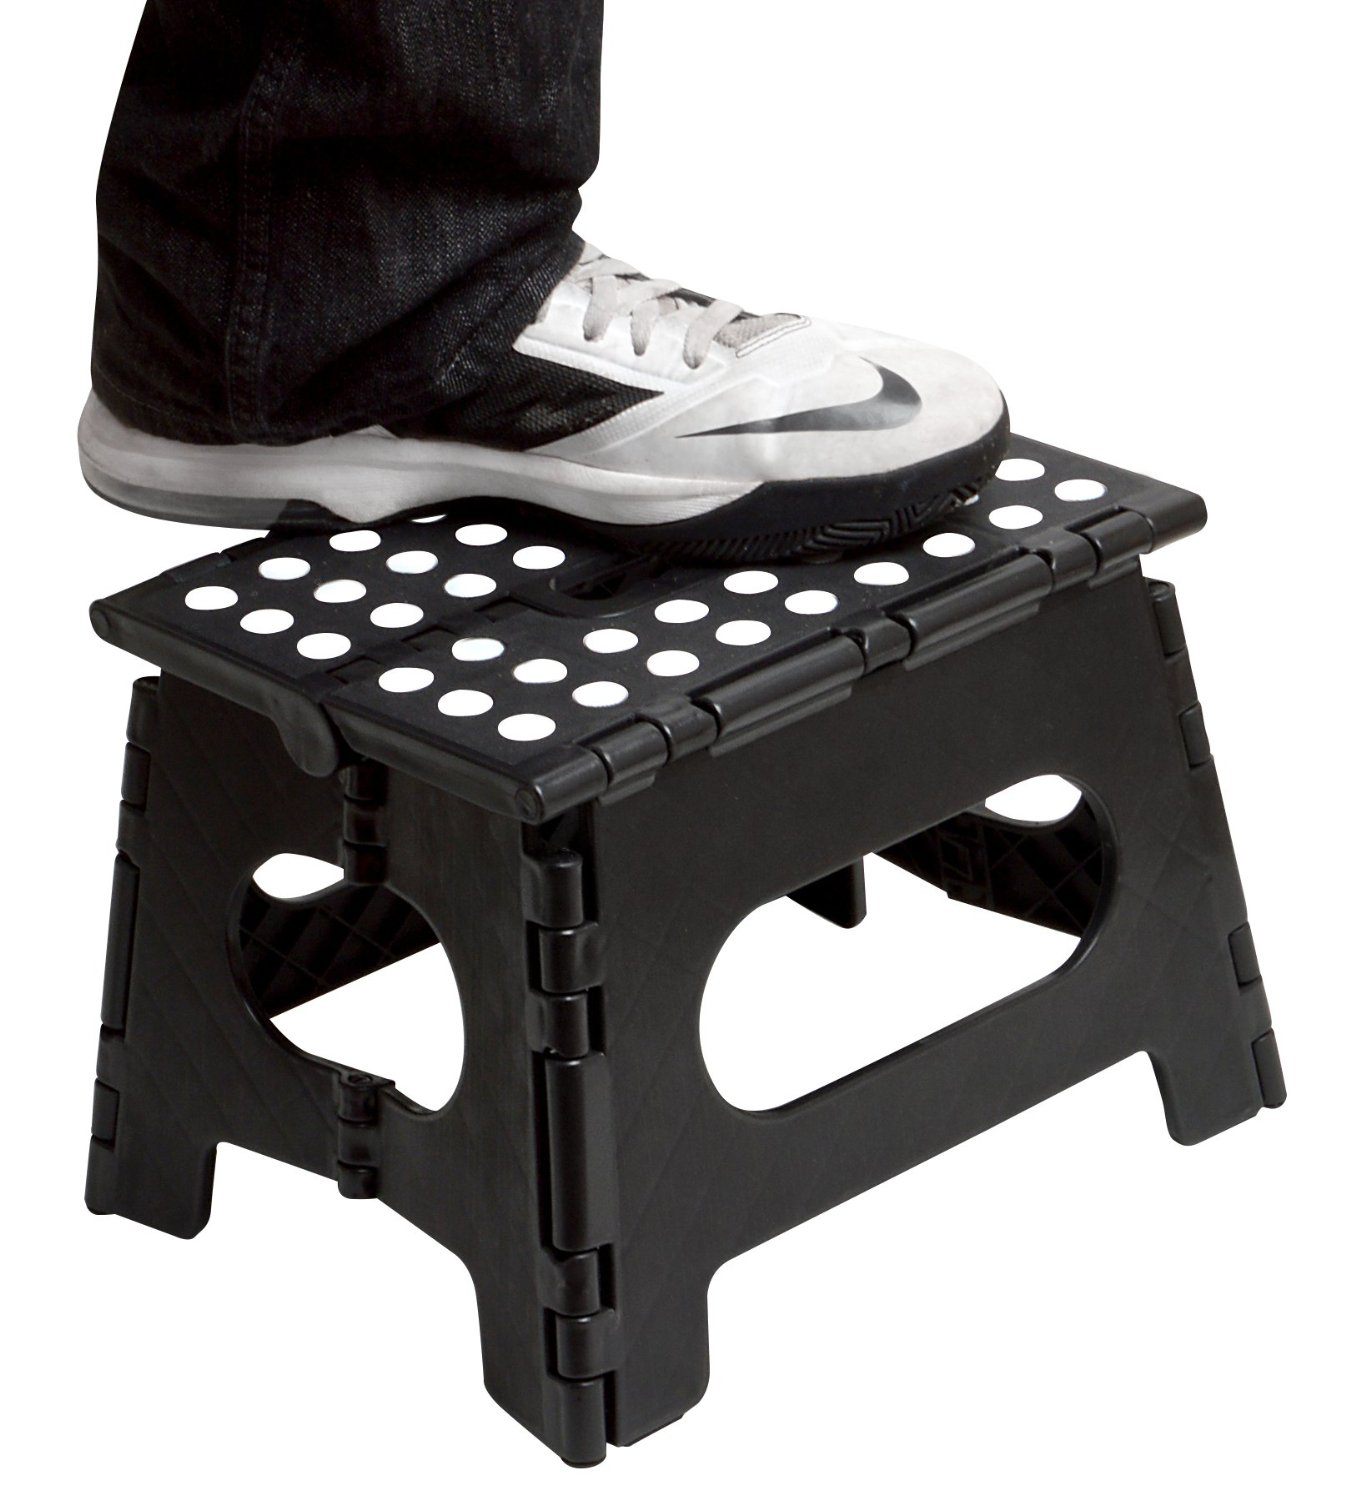 Folding Stepping Stools For Adults Thesteppingstool Com